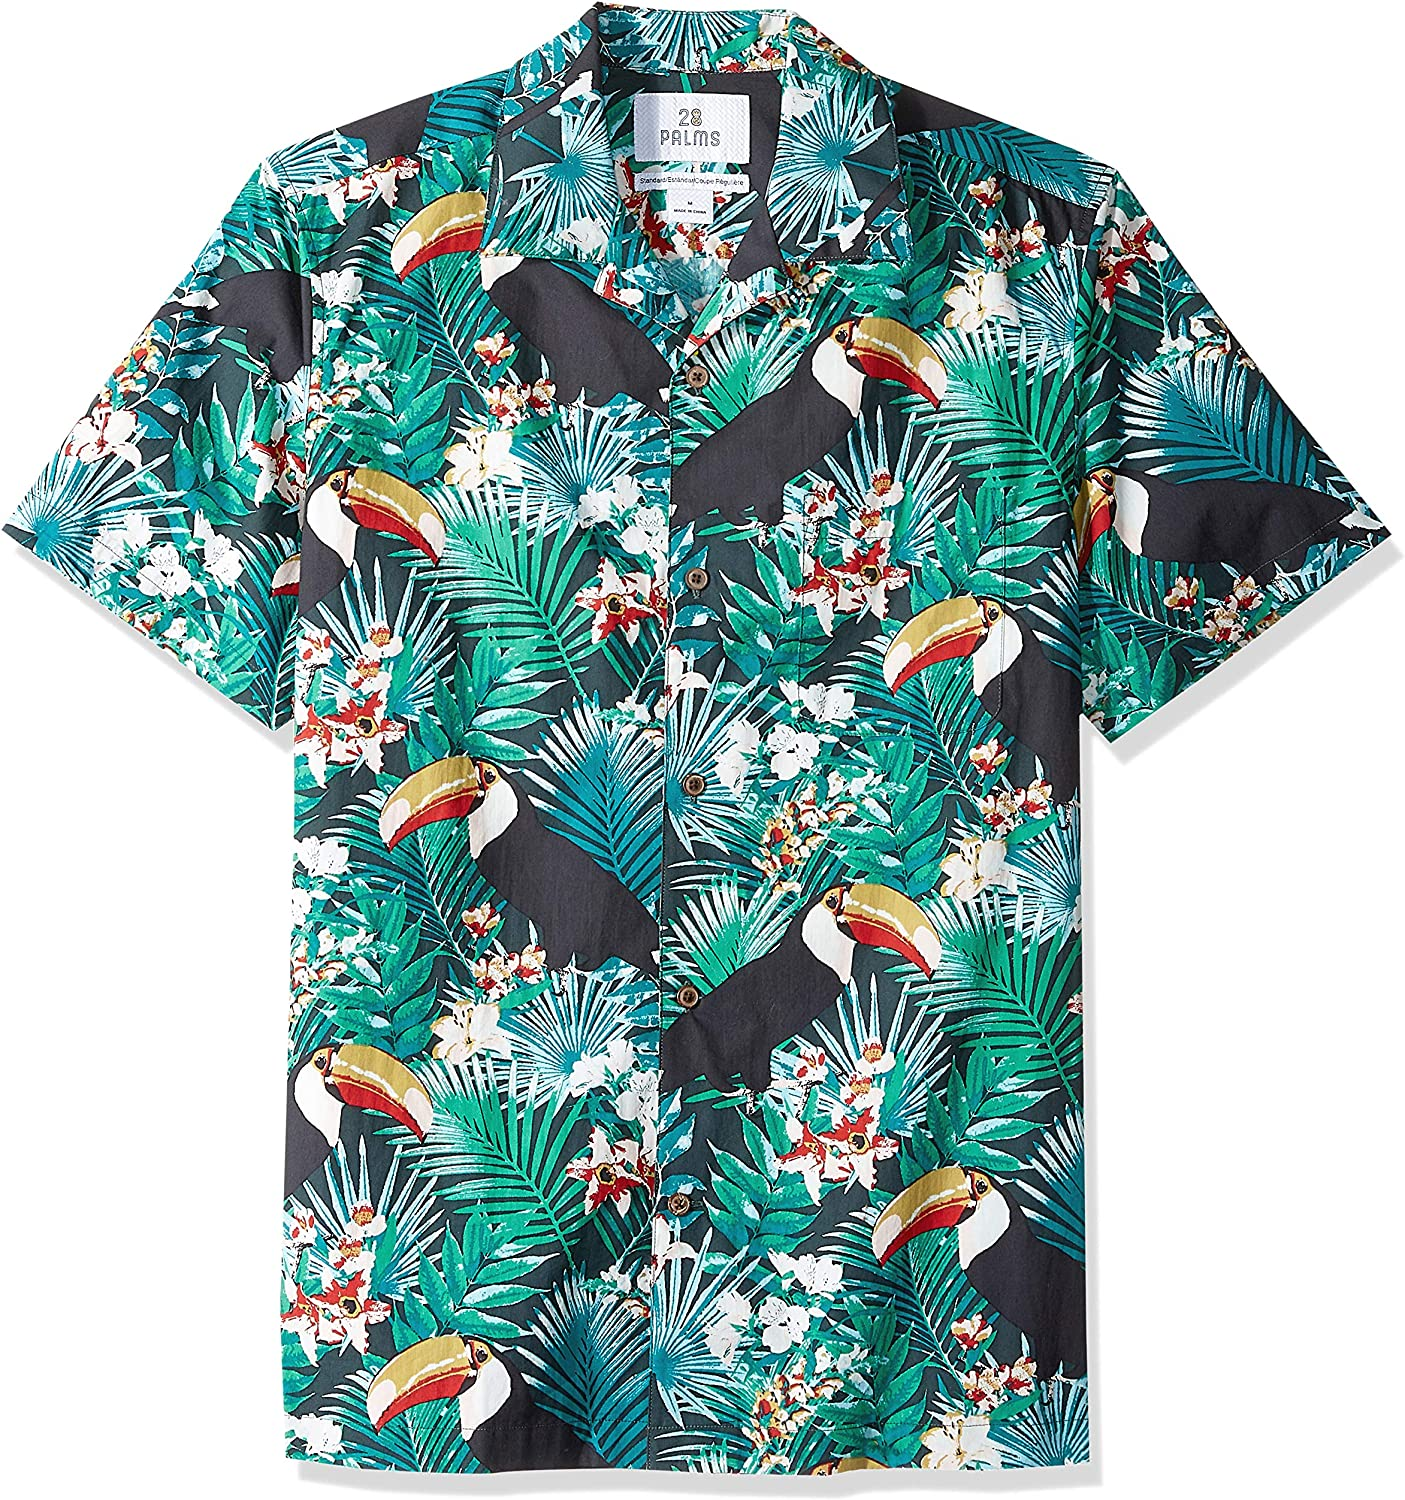 Marchio 28 Palms Standard-Fit 100/% Cotton Tropical Hawaiian Shirt Uomo